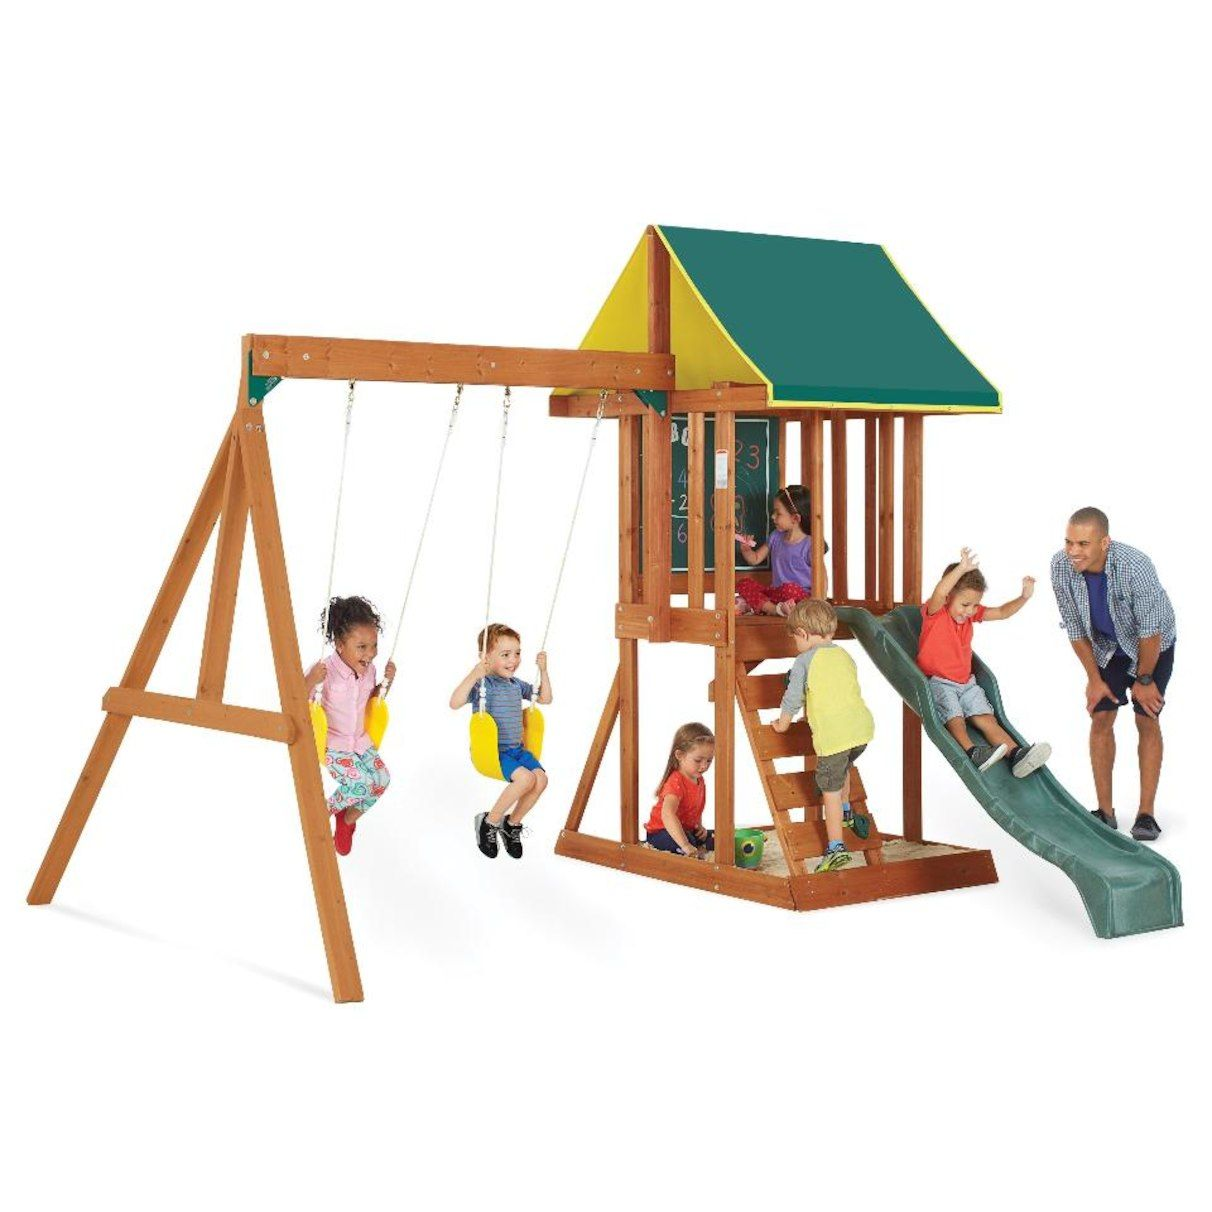 351 Big Backyard Appleton Wood Swing Set From Toys R Us Backyard Swing Sets Wooden Swing Set Backyard Swings